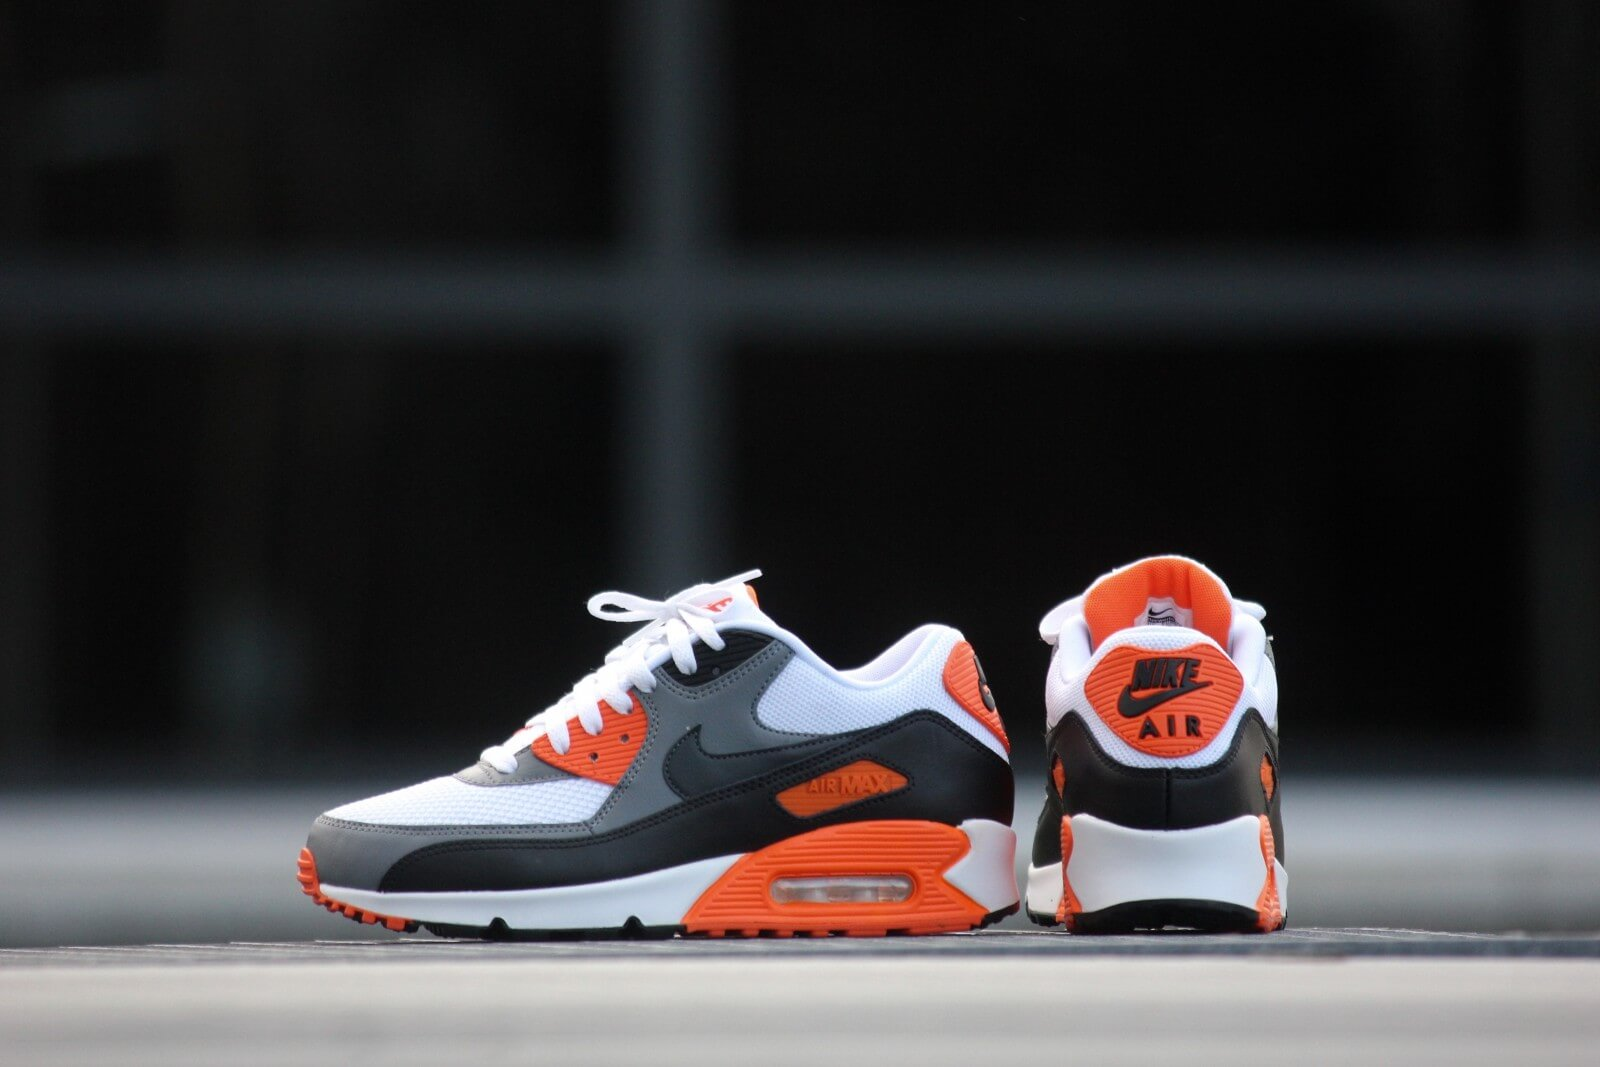 finest selection 9ef70 d7c9c ... coupon code nike air max 90 essential white anthracite cool grey orange  d3122 456ab